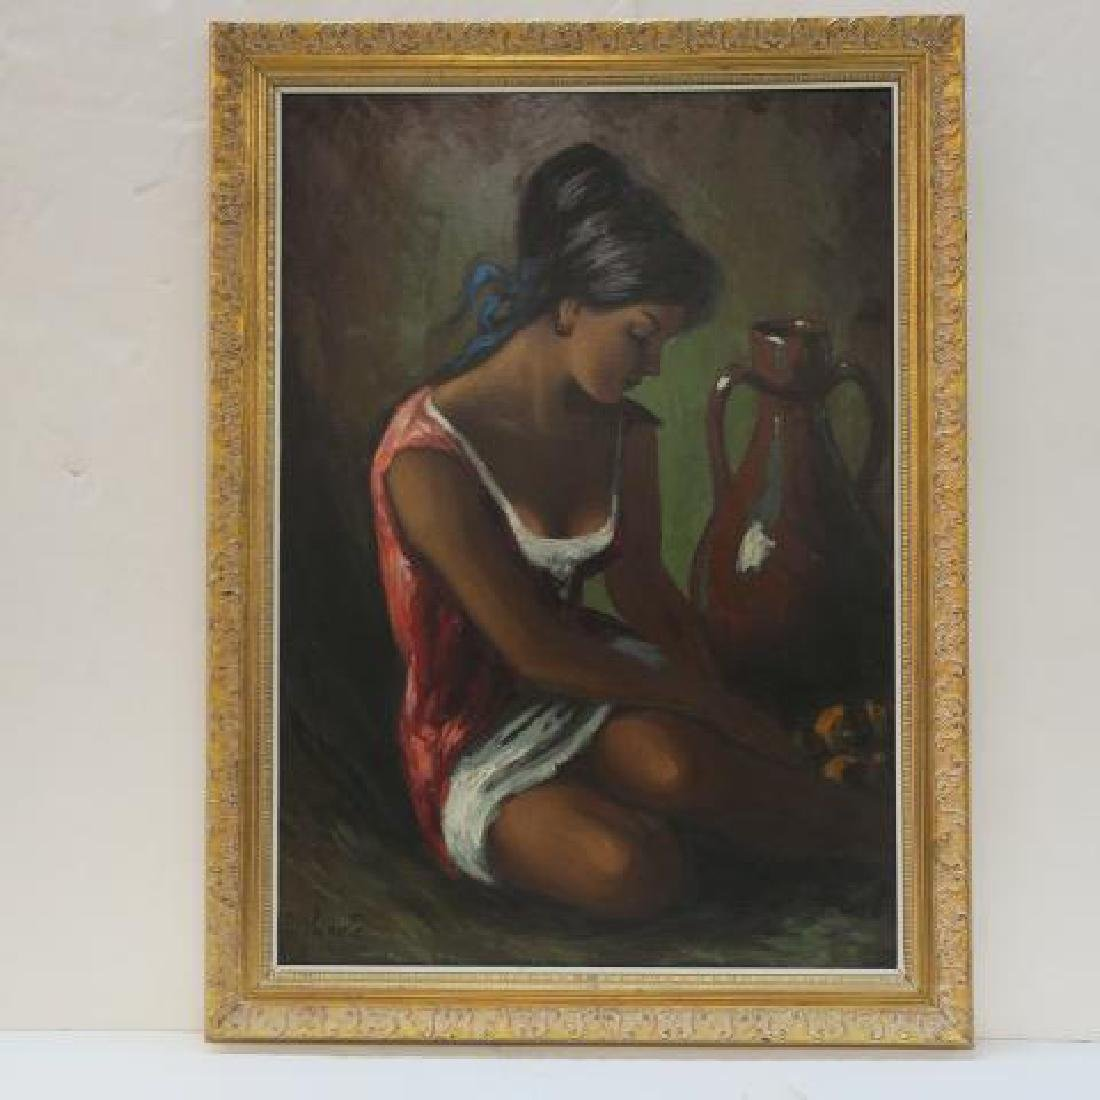 VICENTE, Oil on Canvas, YOUNG GIRL AT WELL: